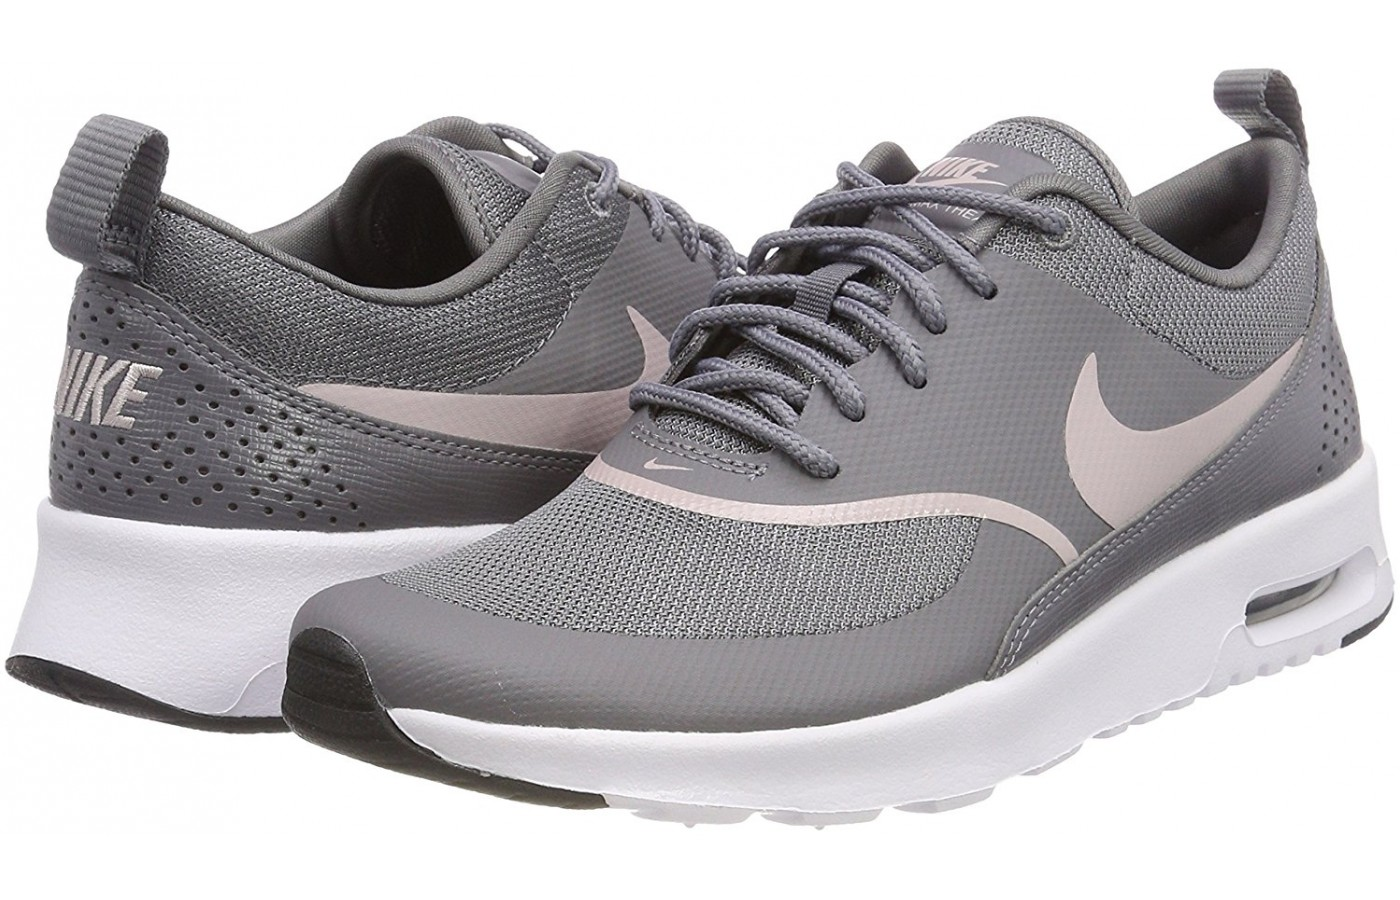 new products d1fc7 9929d Nike Air Max Thea Running Shoes Reviewed